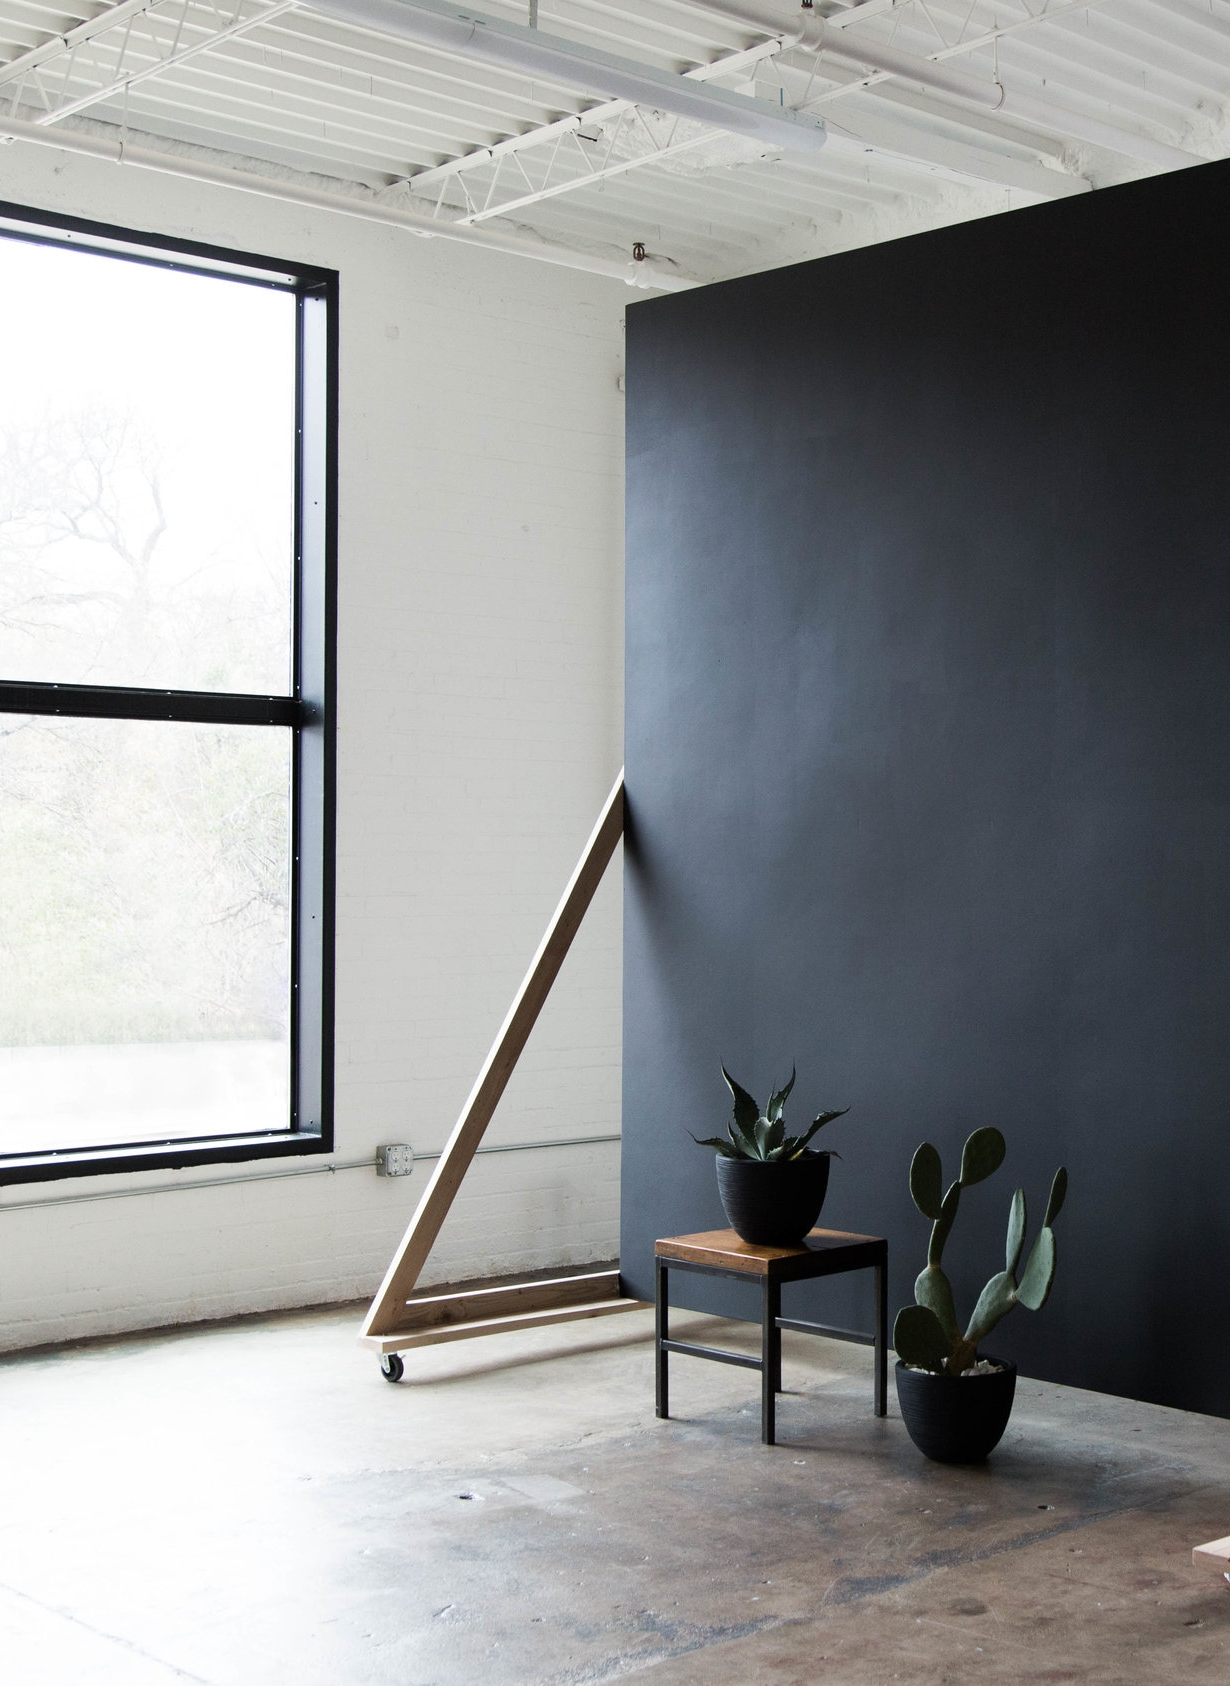 STUDIO I - Just over 900 sq. ft. of space to create the perfect portrait. Two large, south facing windows allow for even, soft light throughout the afternoon and large, blank space on the east and west walls allow you to manipulate the light in multiple ways.